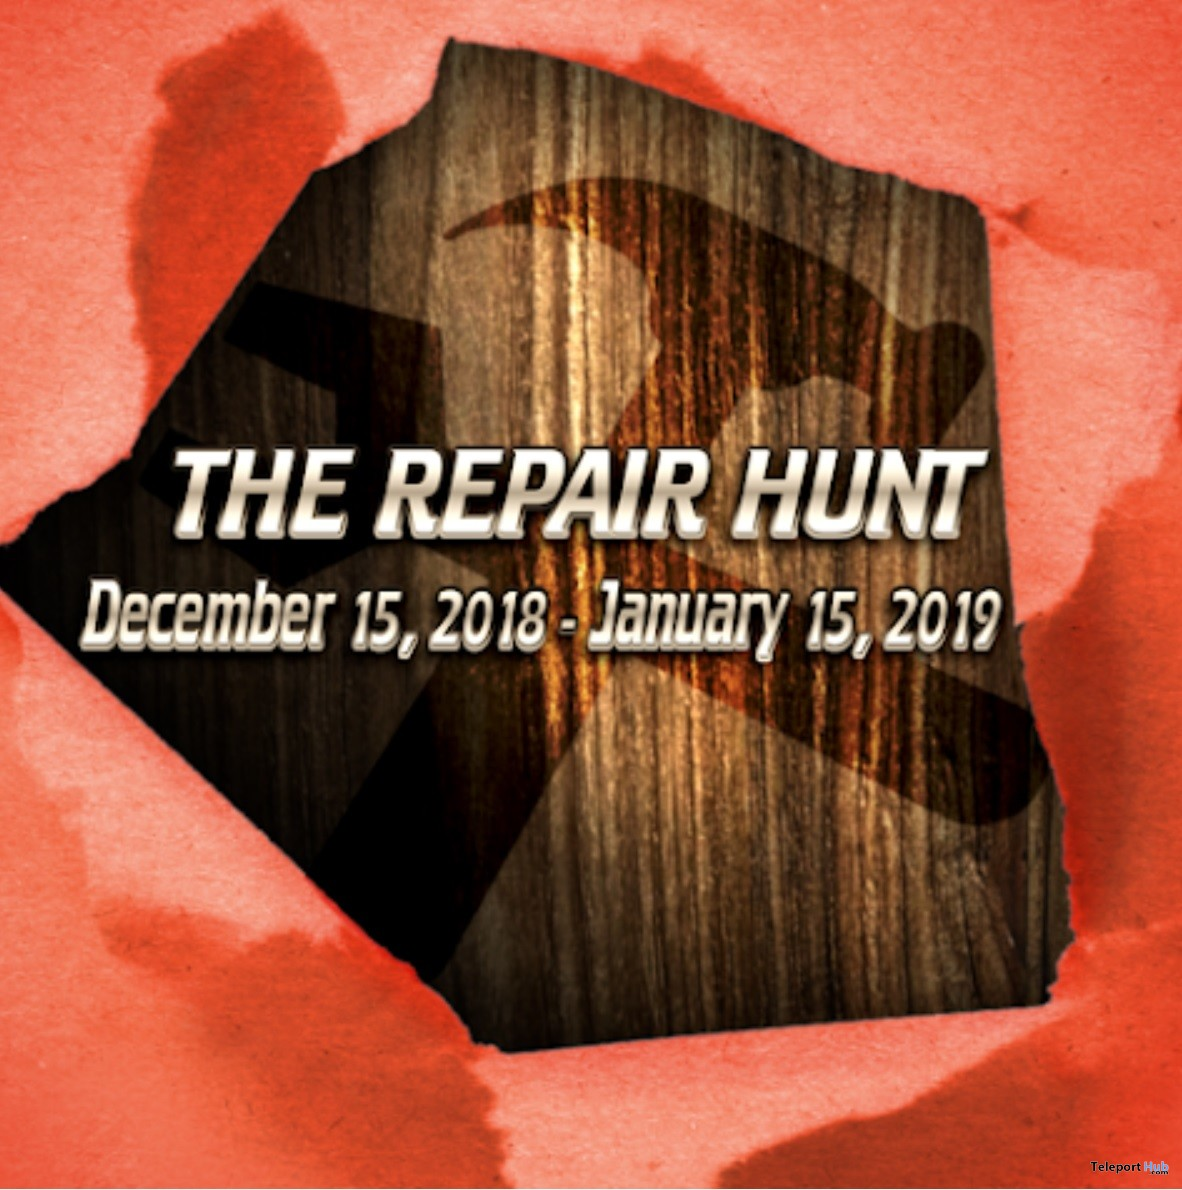 The Repair Hunt 2018 - Teleport Hub - teleporthub.com